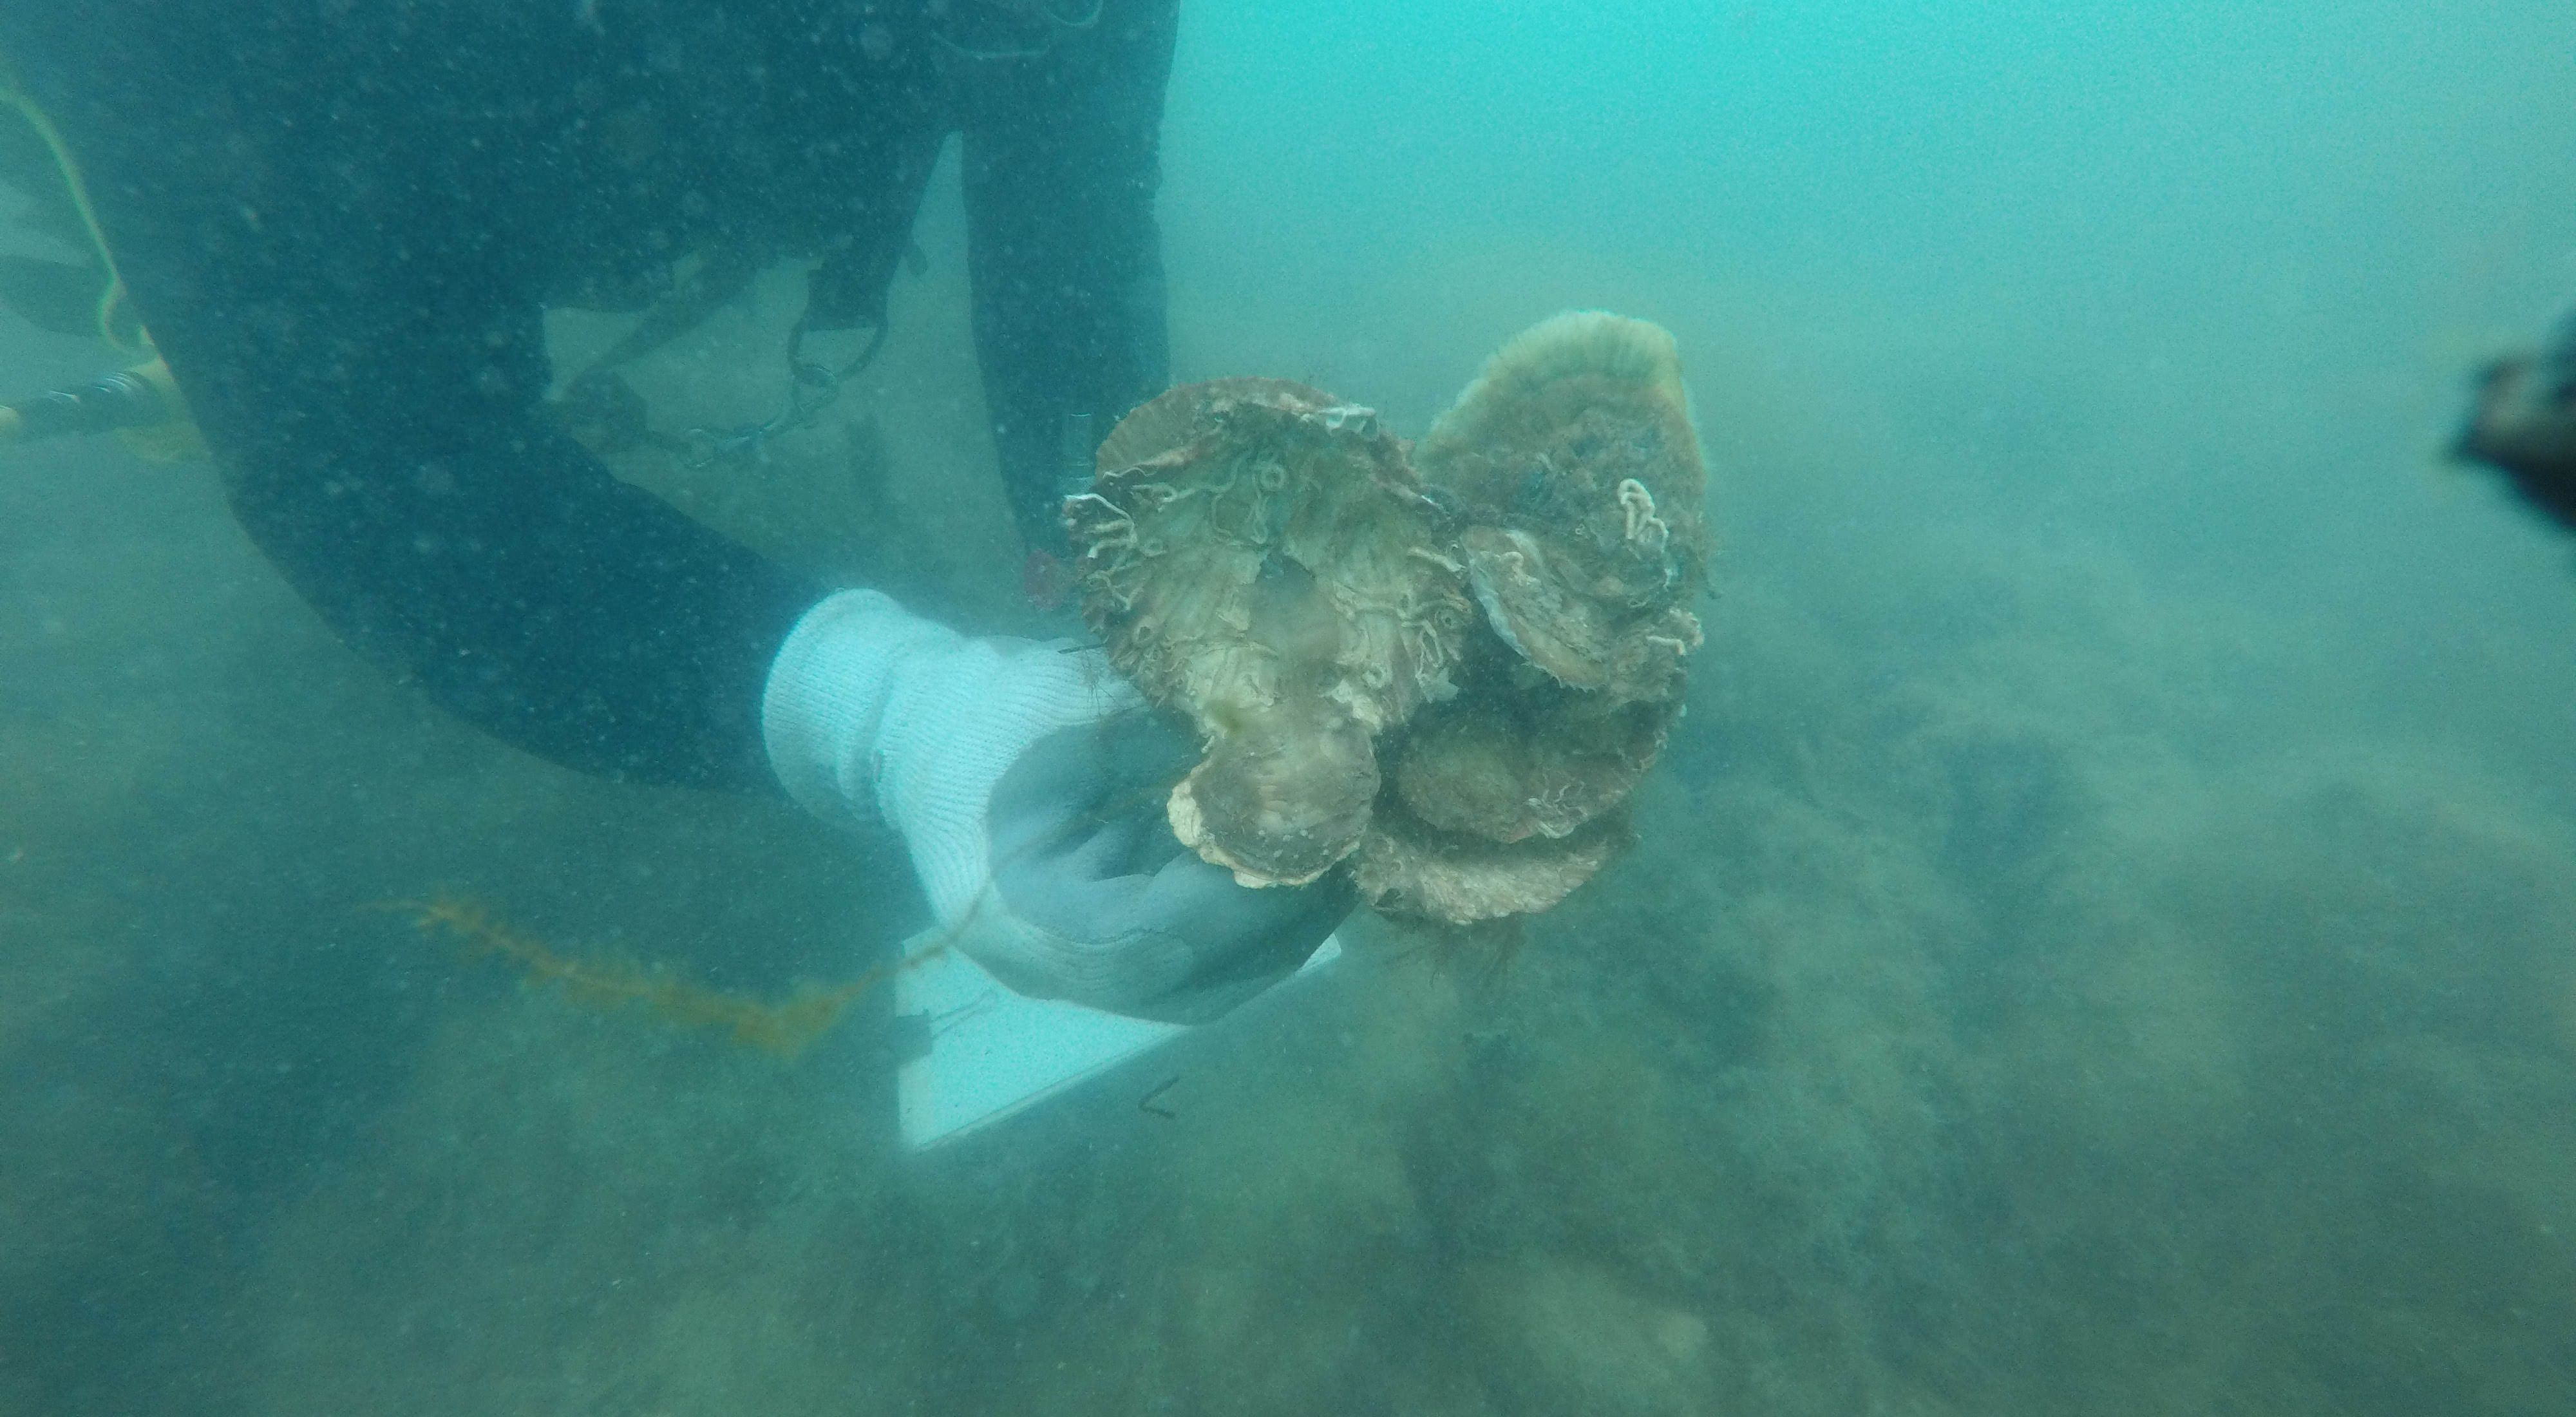 growing on one of TNC's restored shellfish reefs in Port Phillip Bay, Victoria